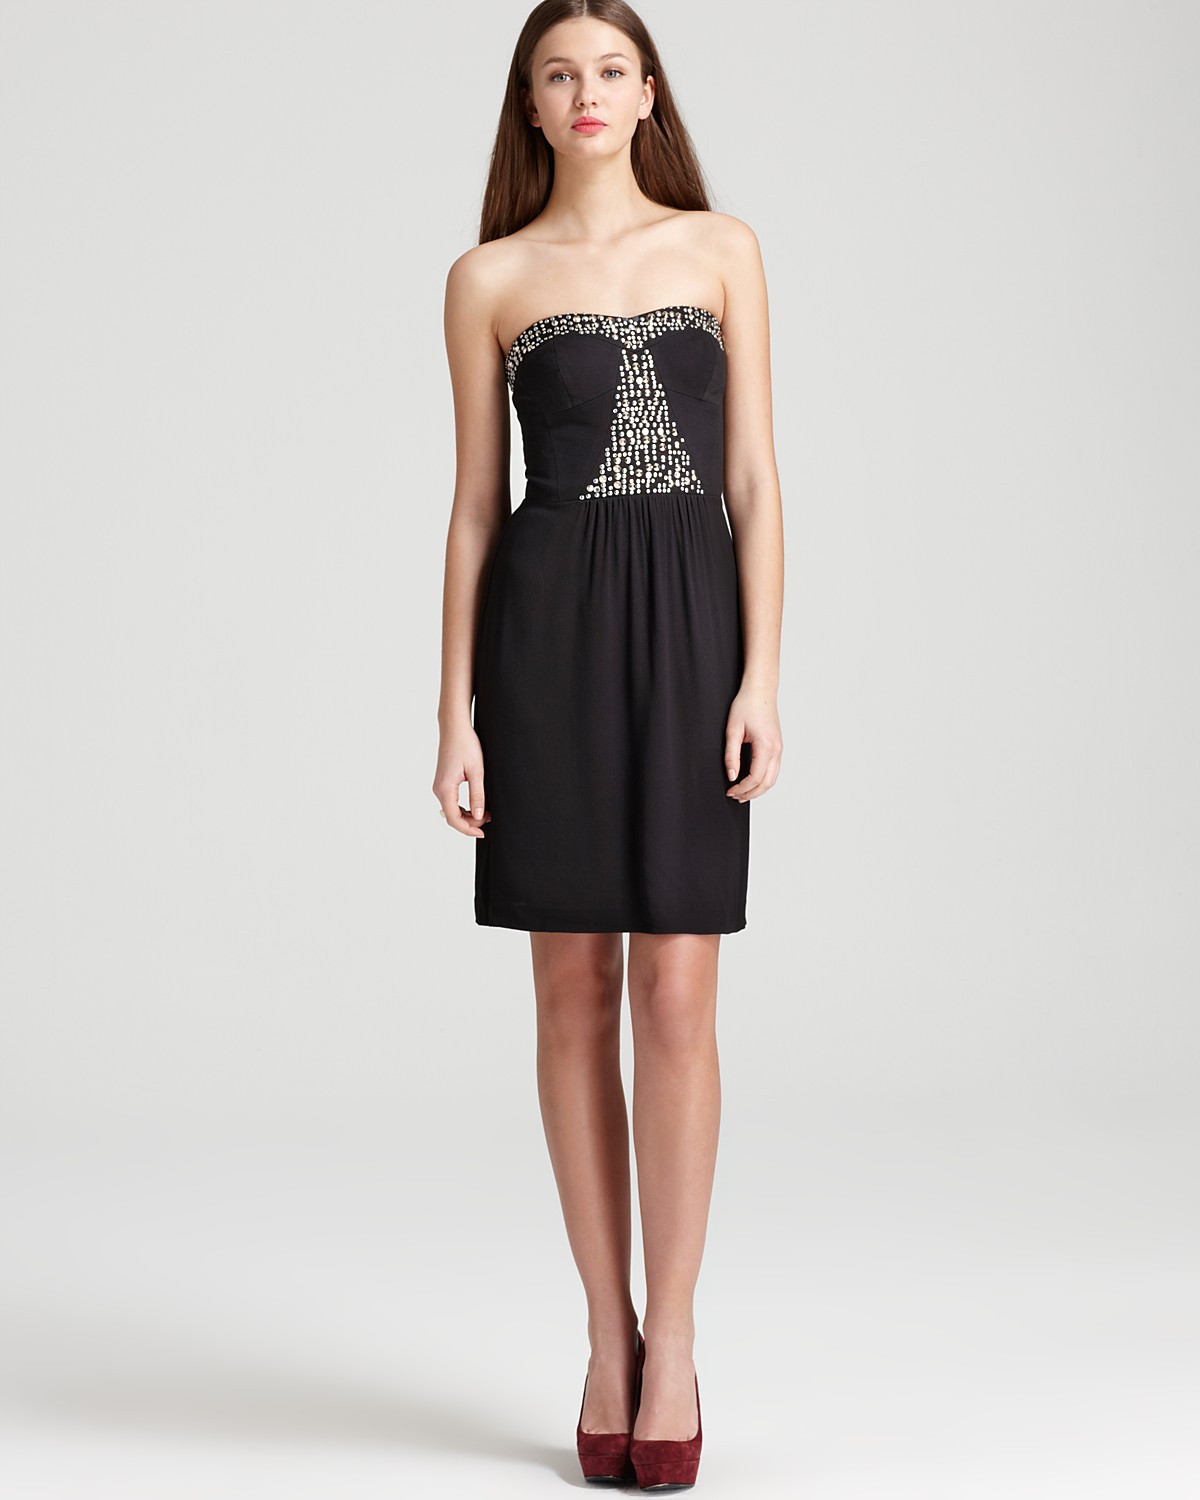 Rebecca Taylor Strapless Dress - Beaded | Bloomingdale's